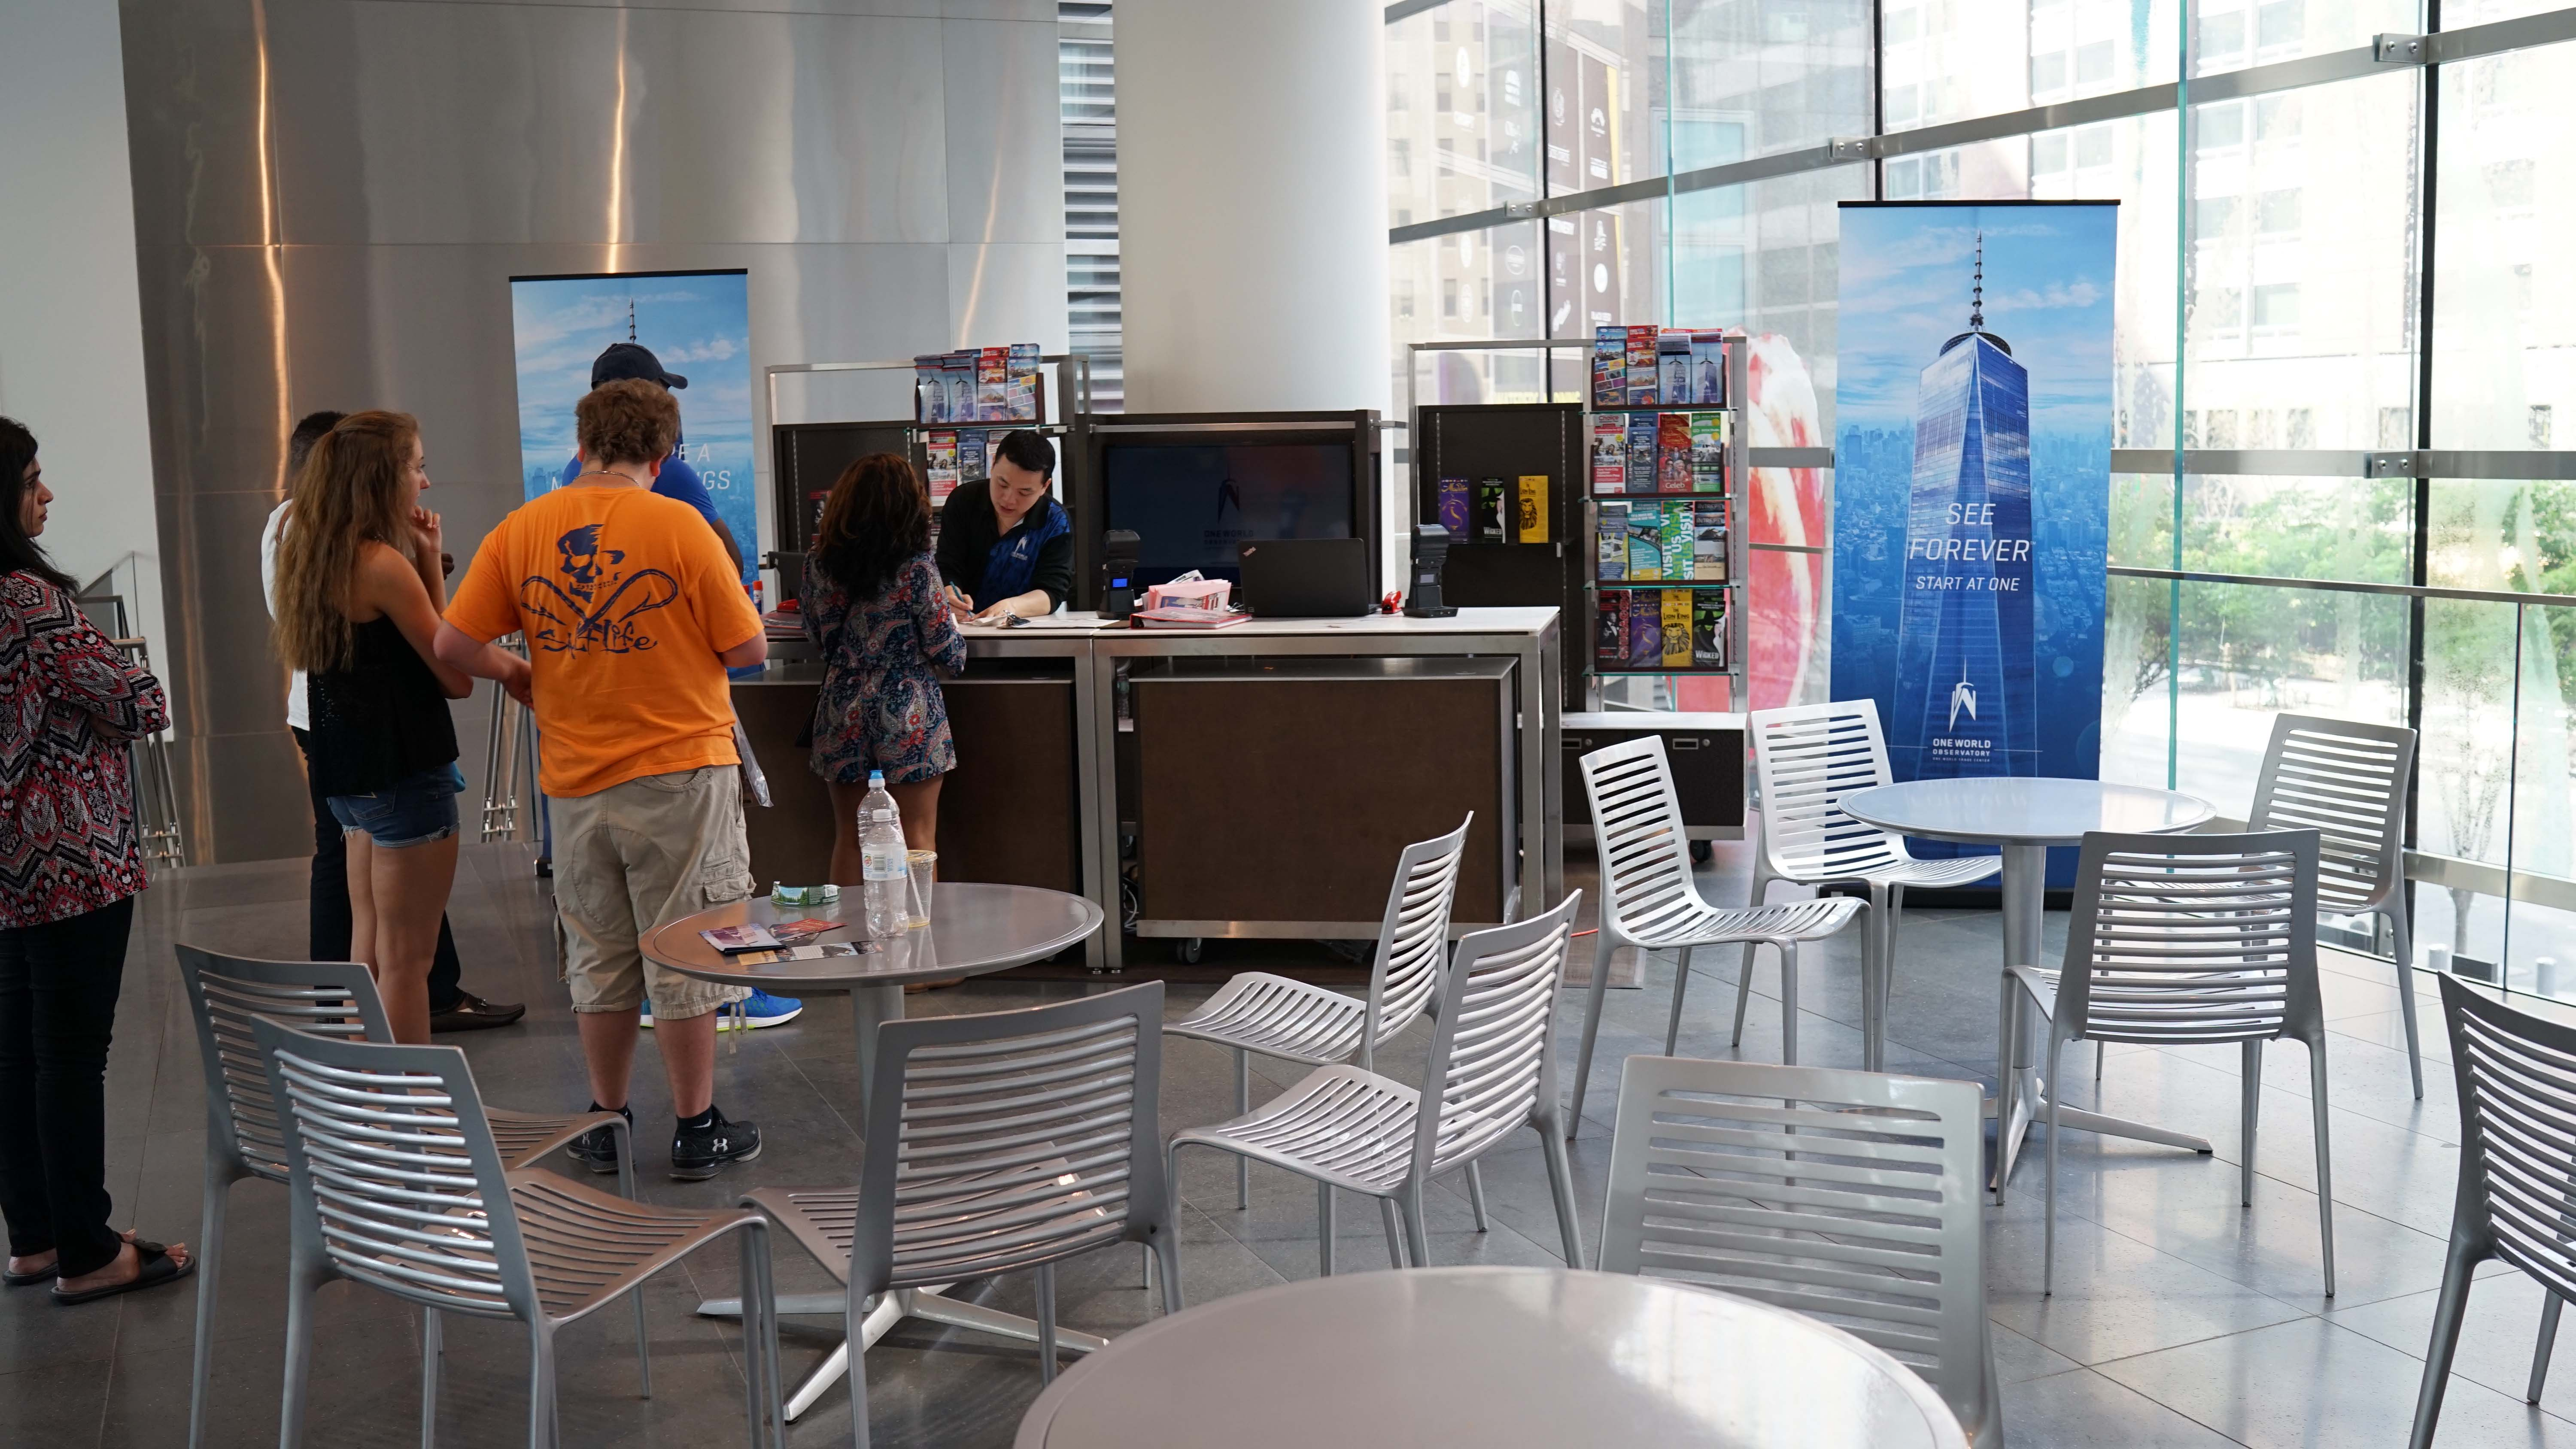 One World Observatory kiosk at brookfield Place